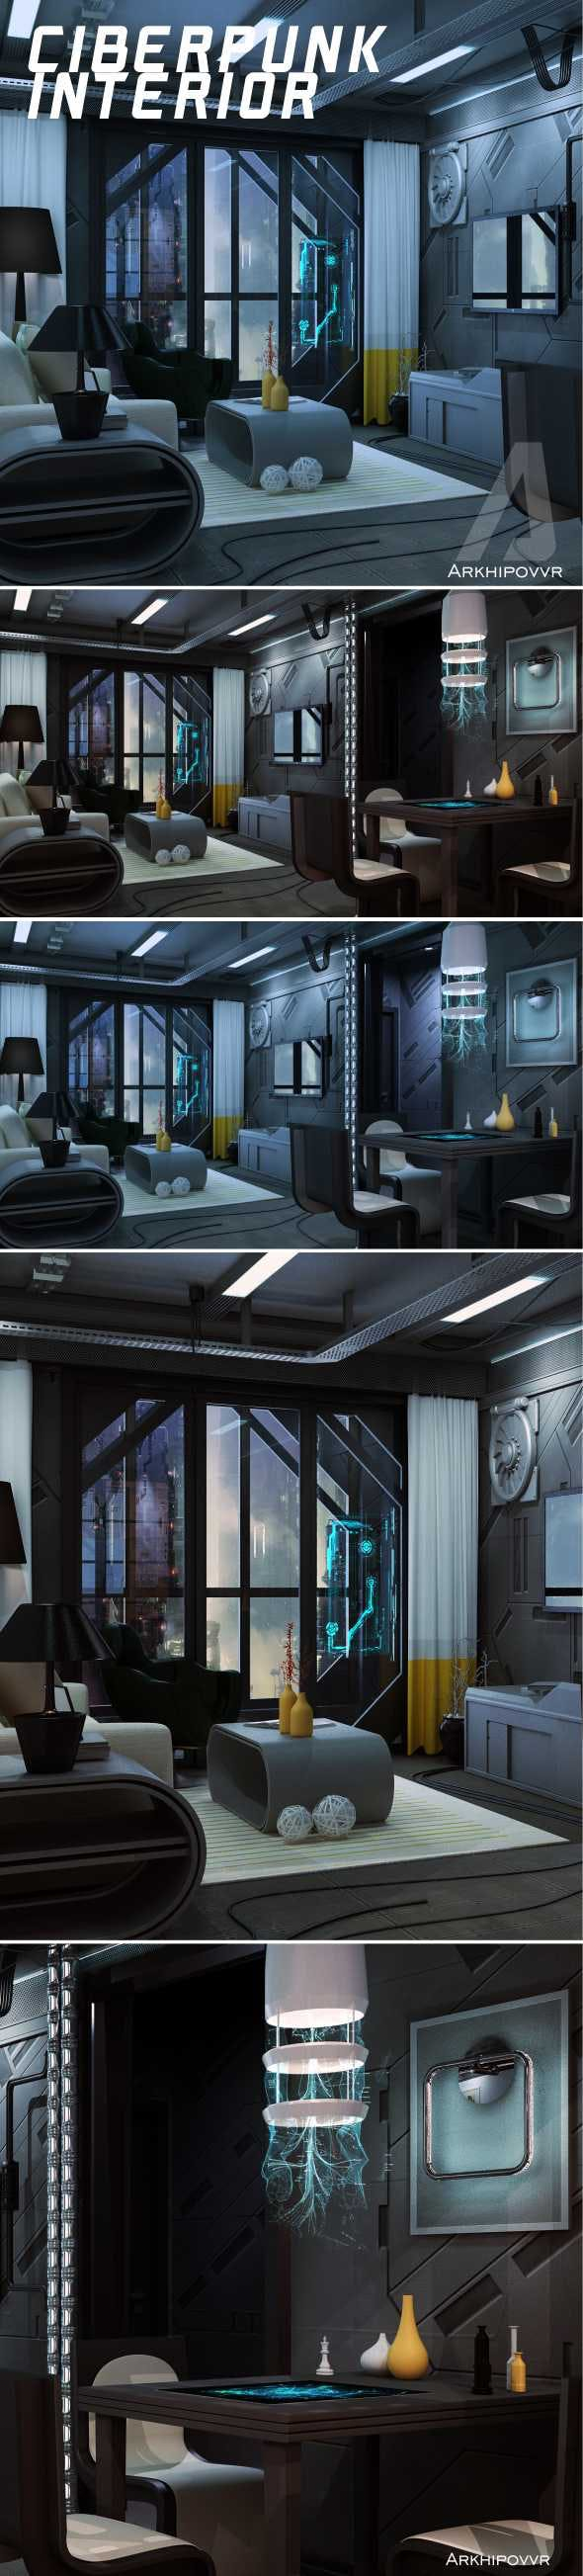 Cyberpunk interior - 3DOcean Item for Sale